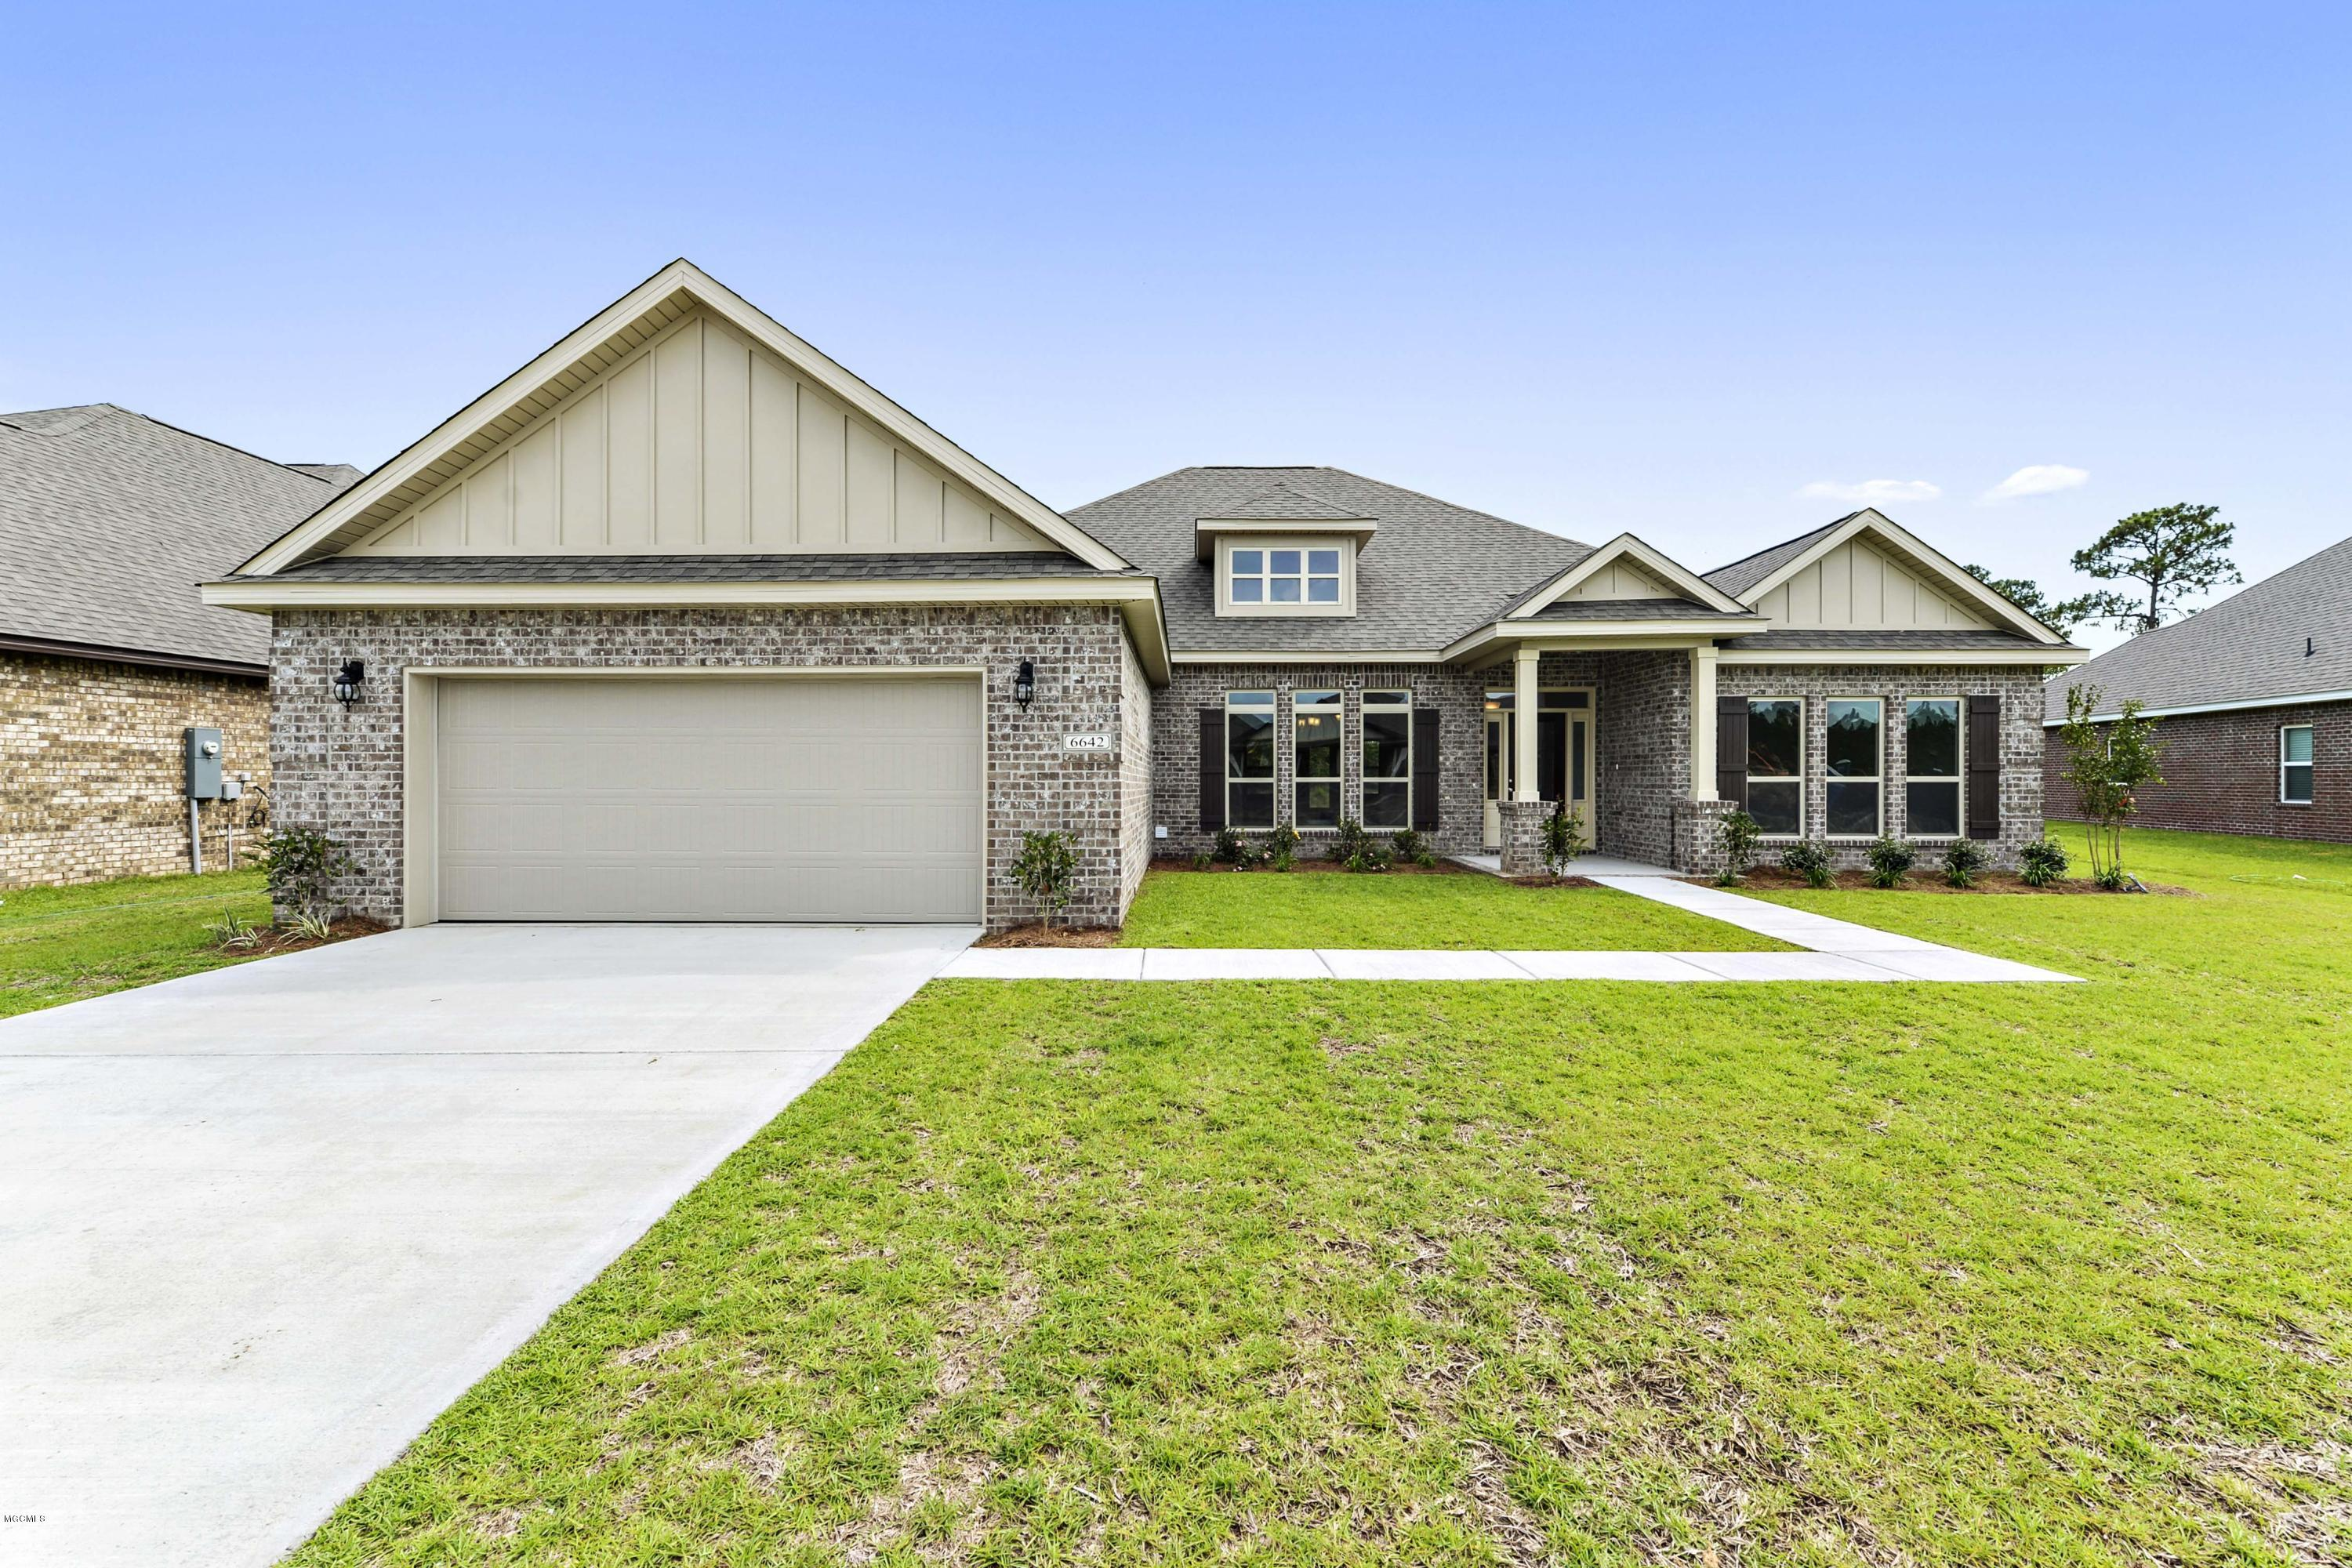 6412 Chickory Way, Ocean Springs, Mississippi 39564, 4 Bedrooms Bedrooms, ,3 BathroomsBathrooms,Single-family,For Sale,Chickory,342058